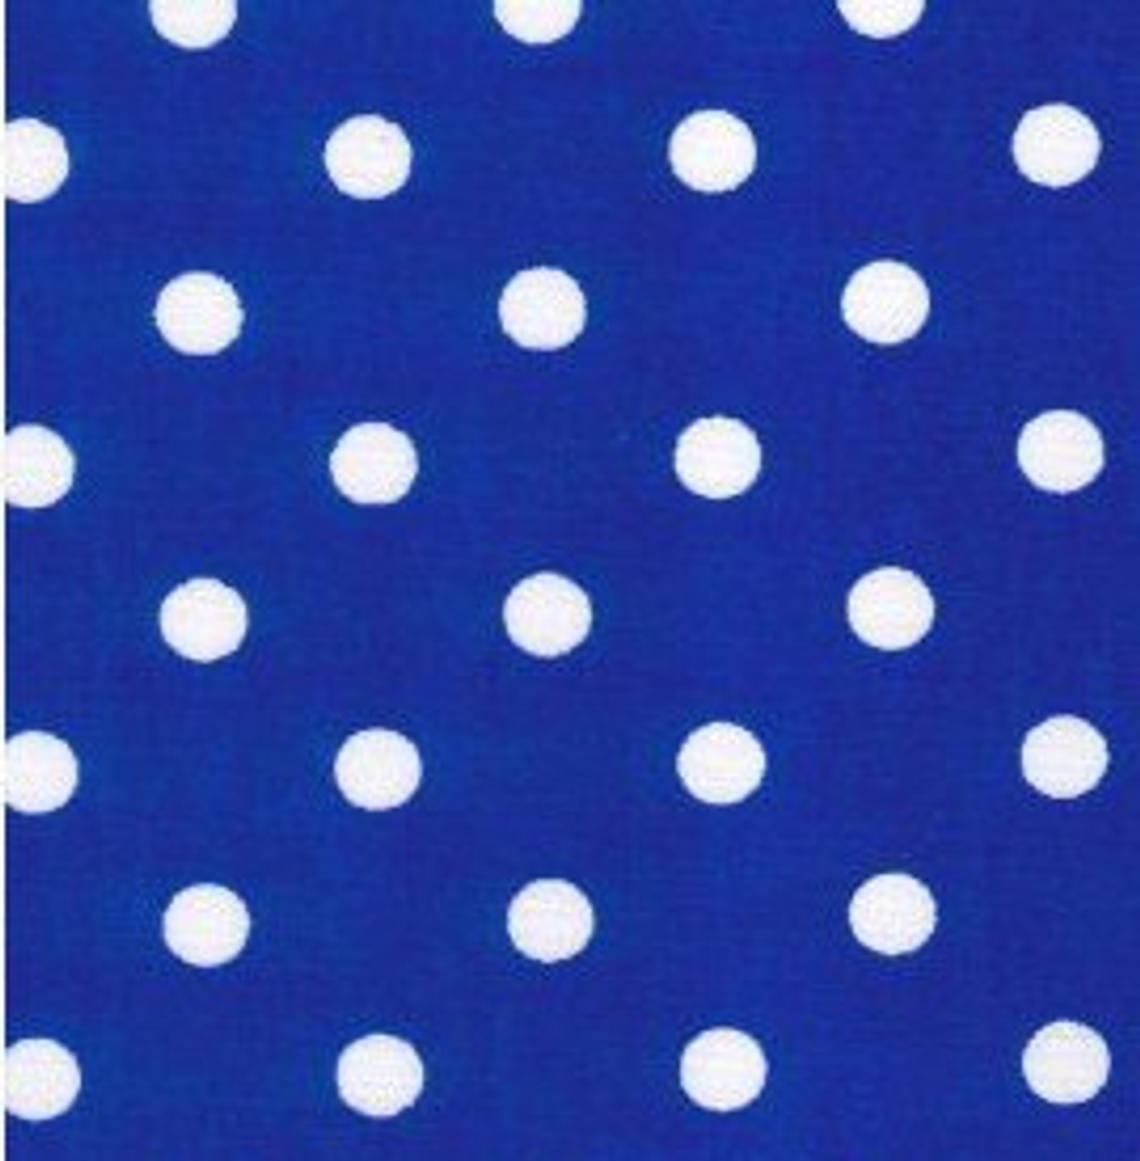 Excellent Quality Royal Blue 22mm Large Spotty Polka Dot 100% Cotton Poplin Fabric 130gsm Sewing Quilting Craft Home Decor